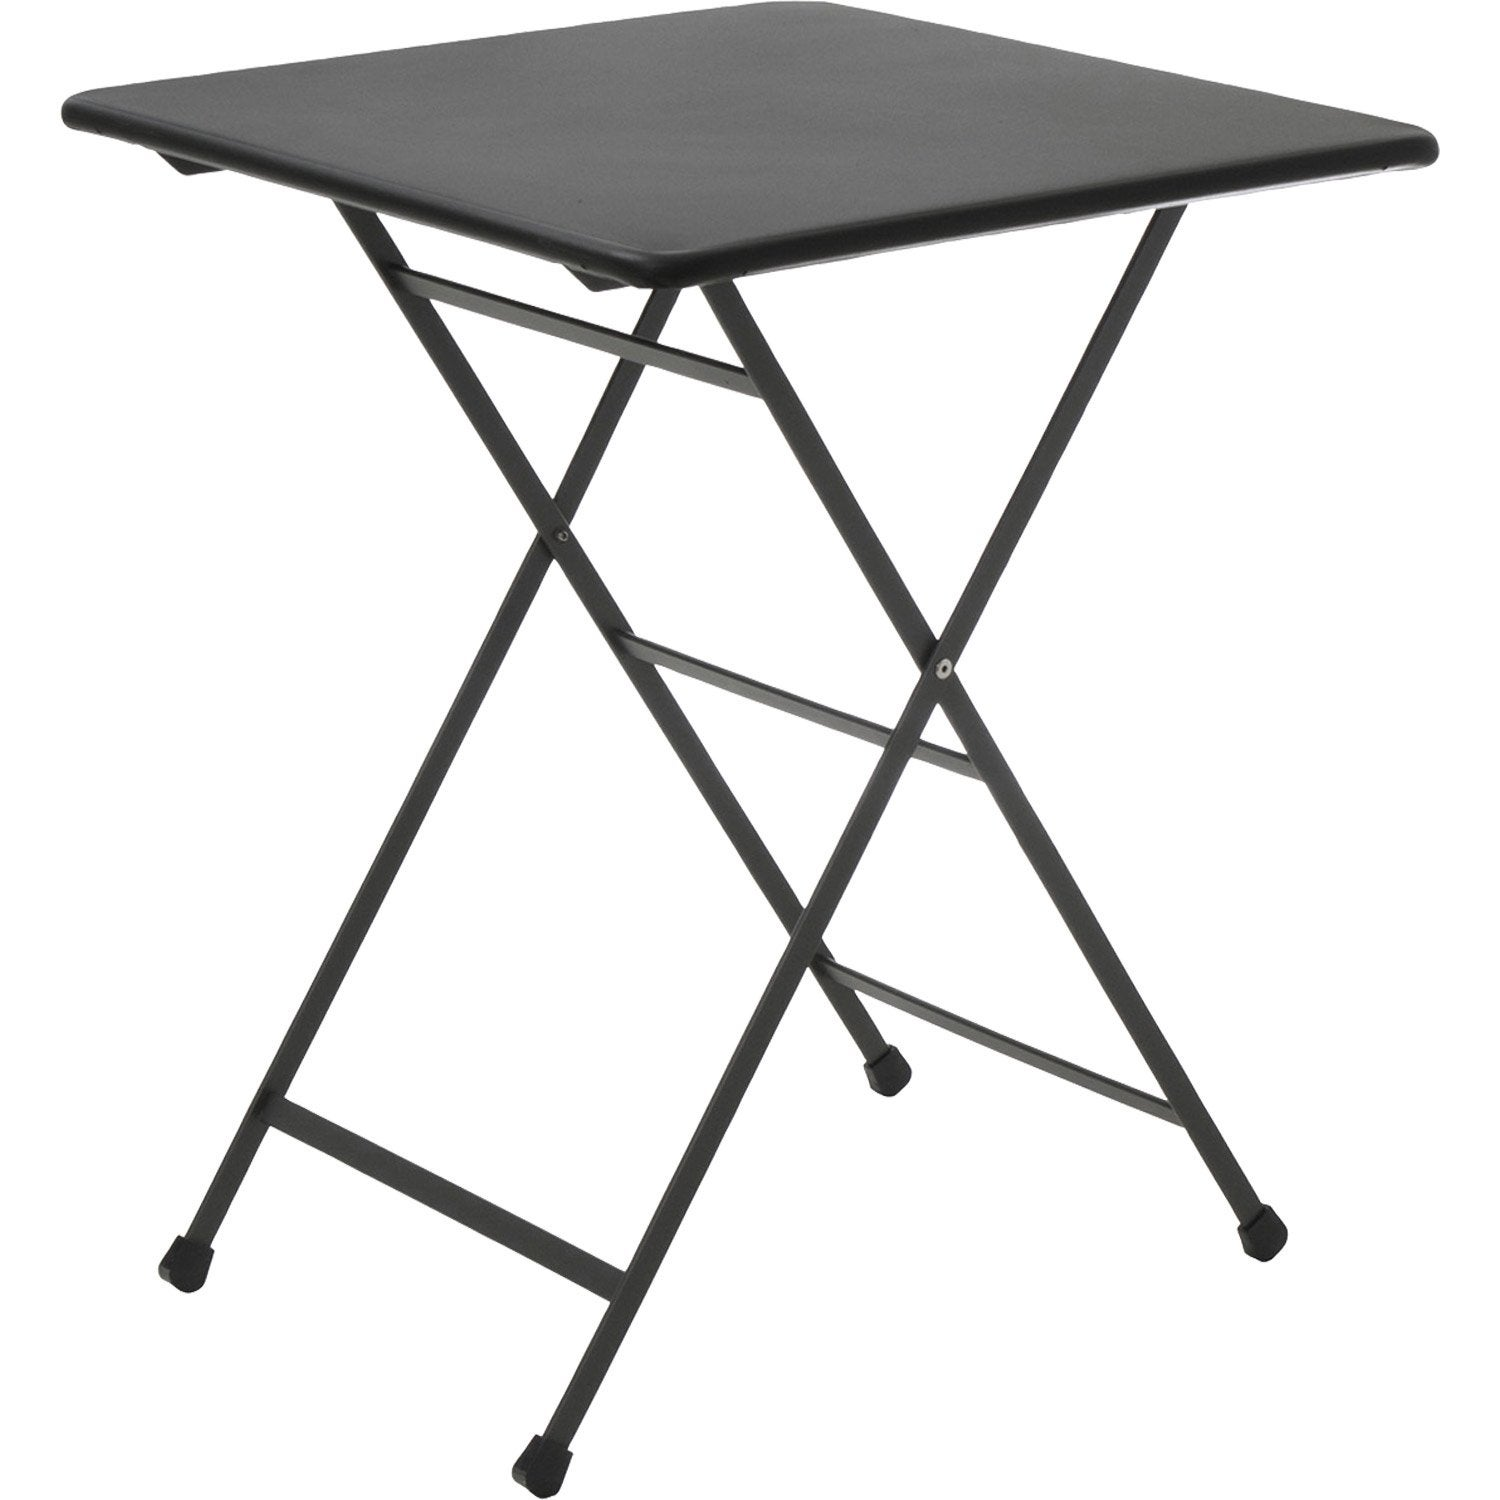 Table de jardin rainbow carr e gris 2 personnes leroy merlin - Leroy merlin table pliante ...